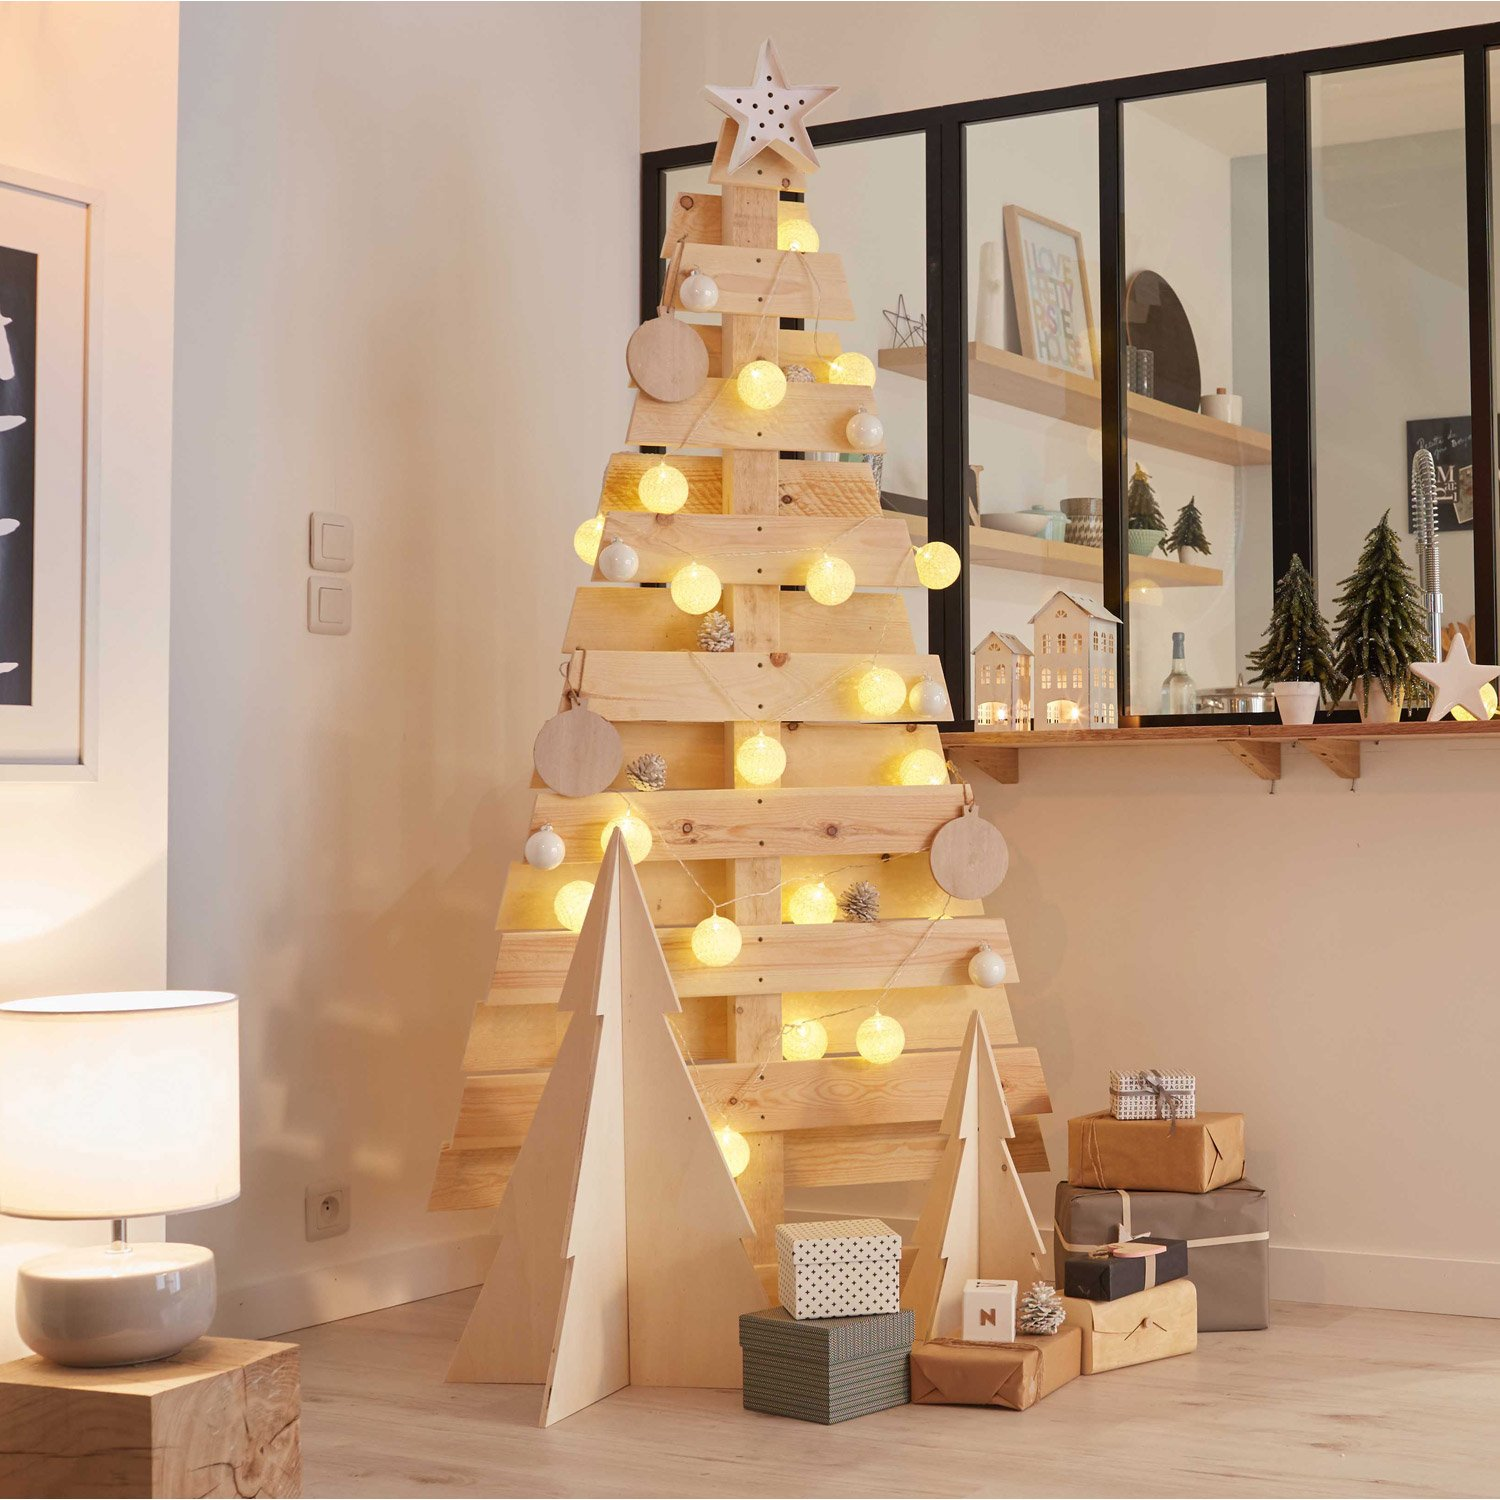 D Co De Noel Diy Pour Le Sapin Archivi Inspid Co